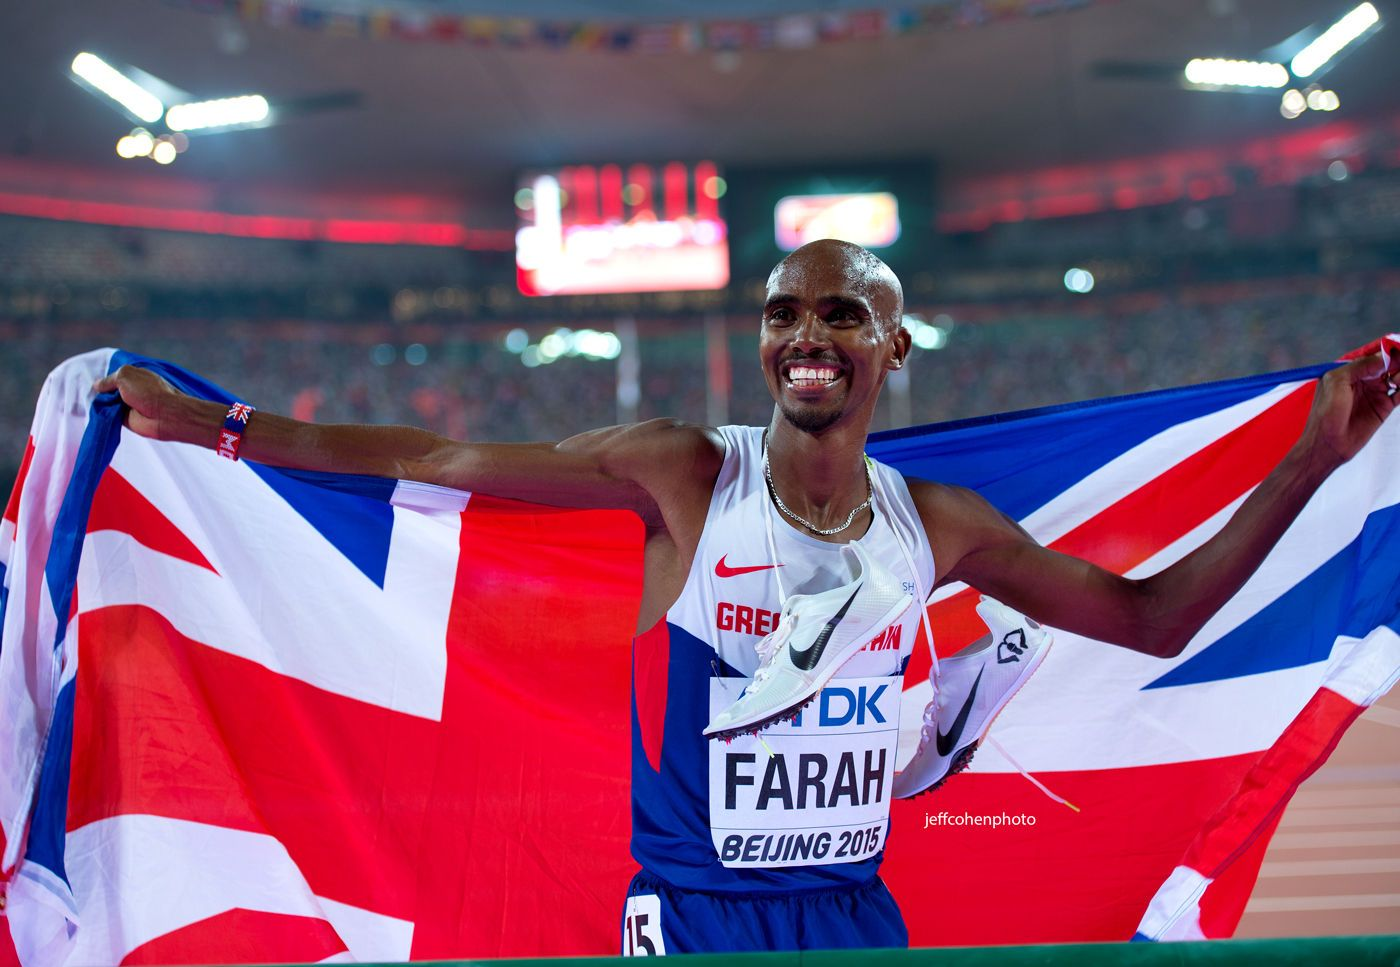 1beijing2015_night_8_mo_farah_flag_jeff_cohen_photo_33058_web.jpg